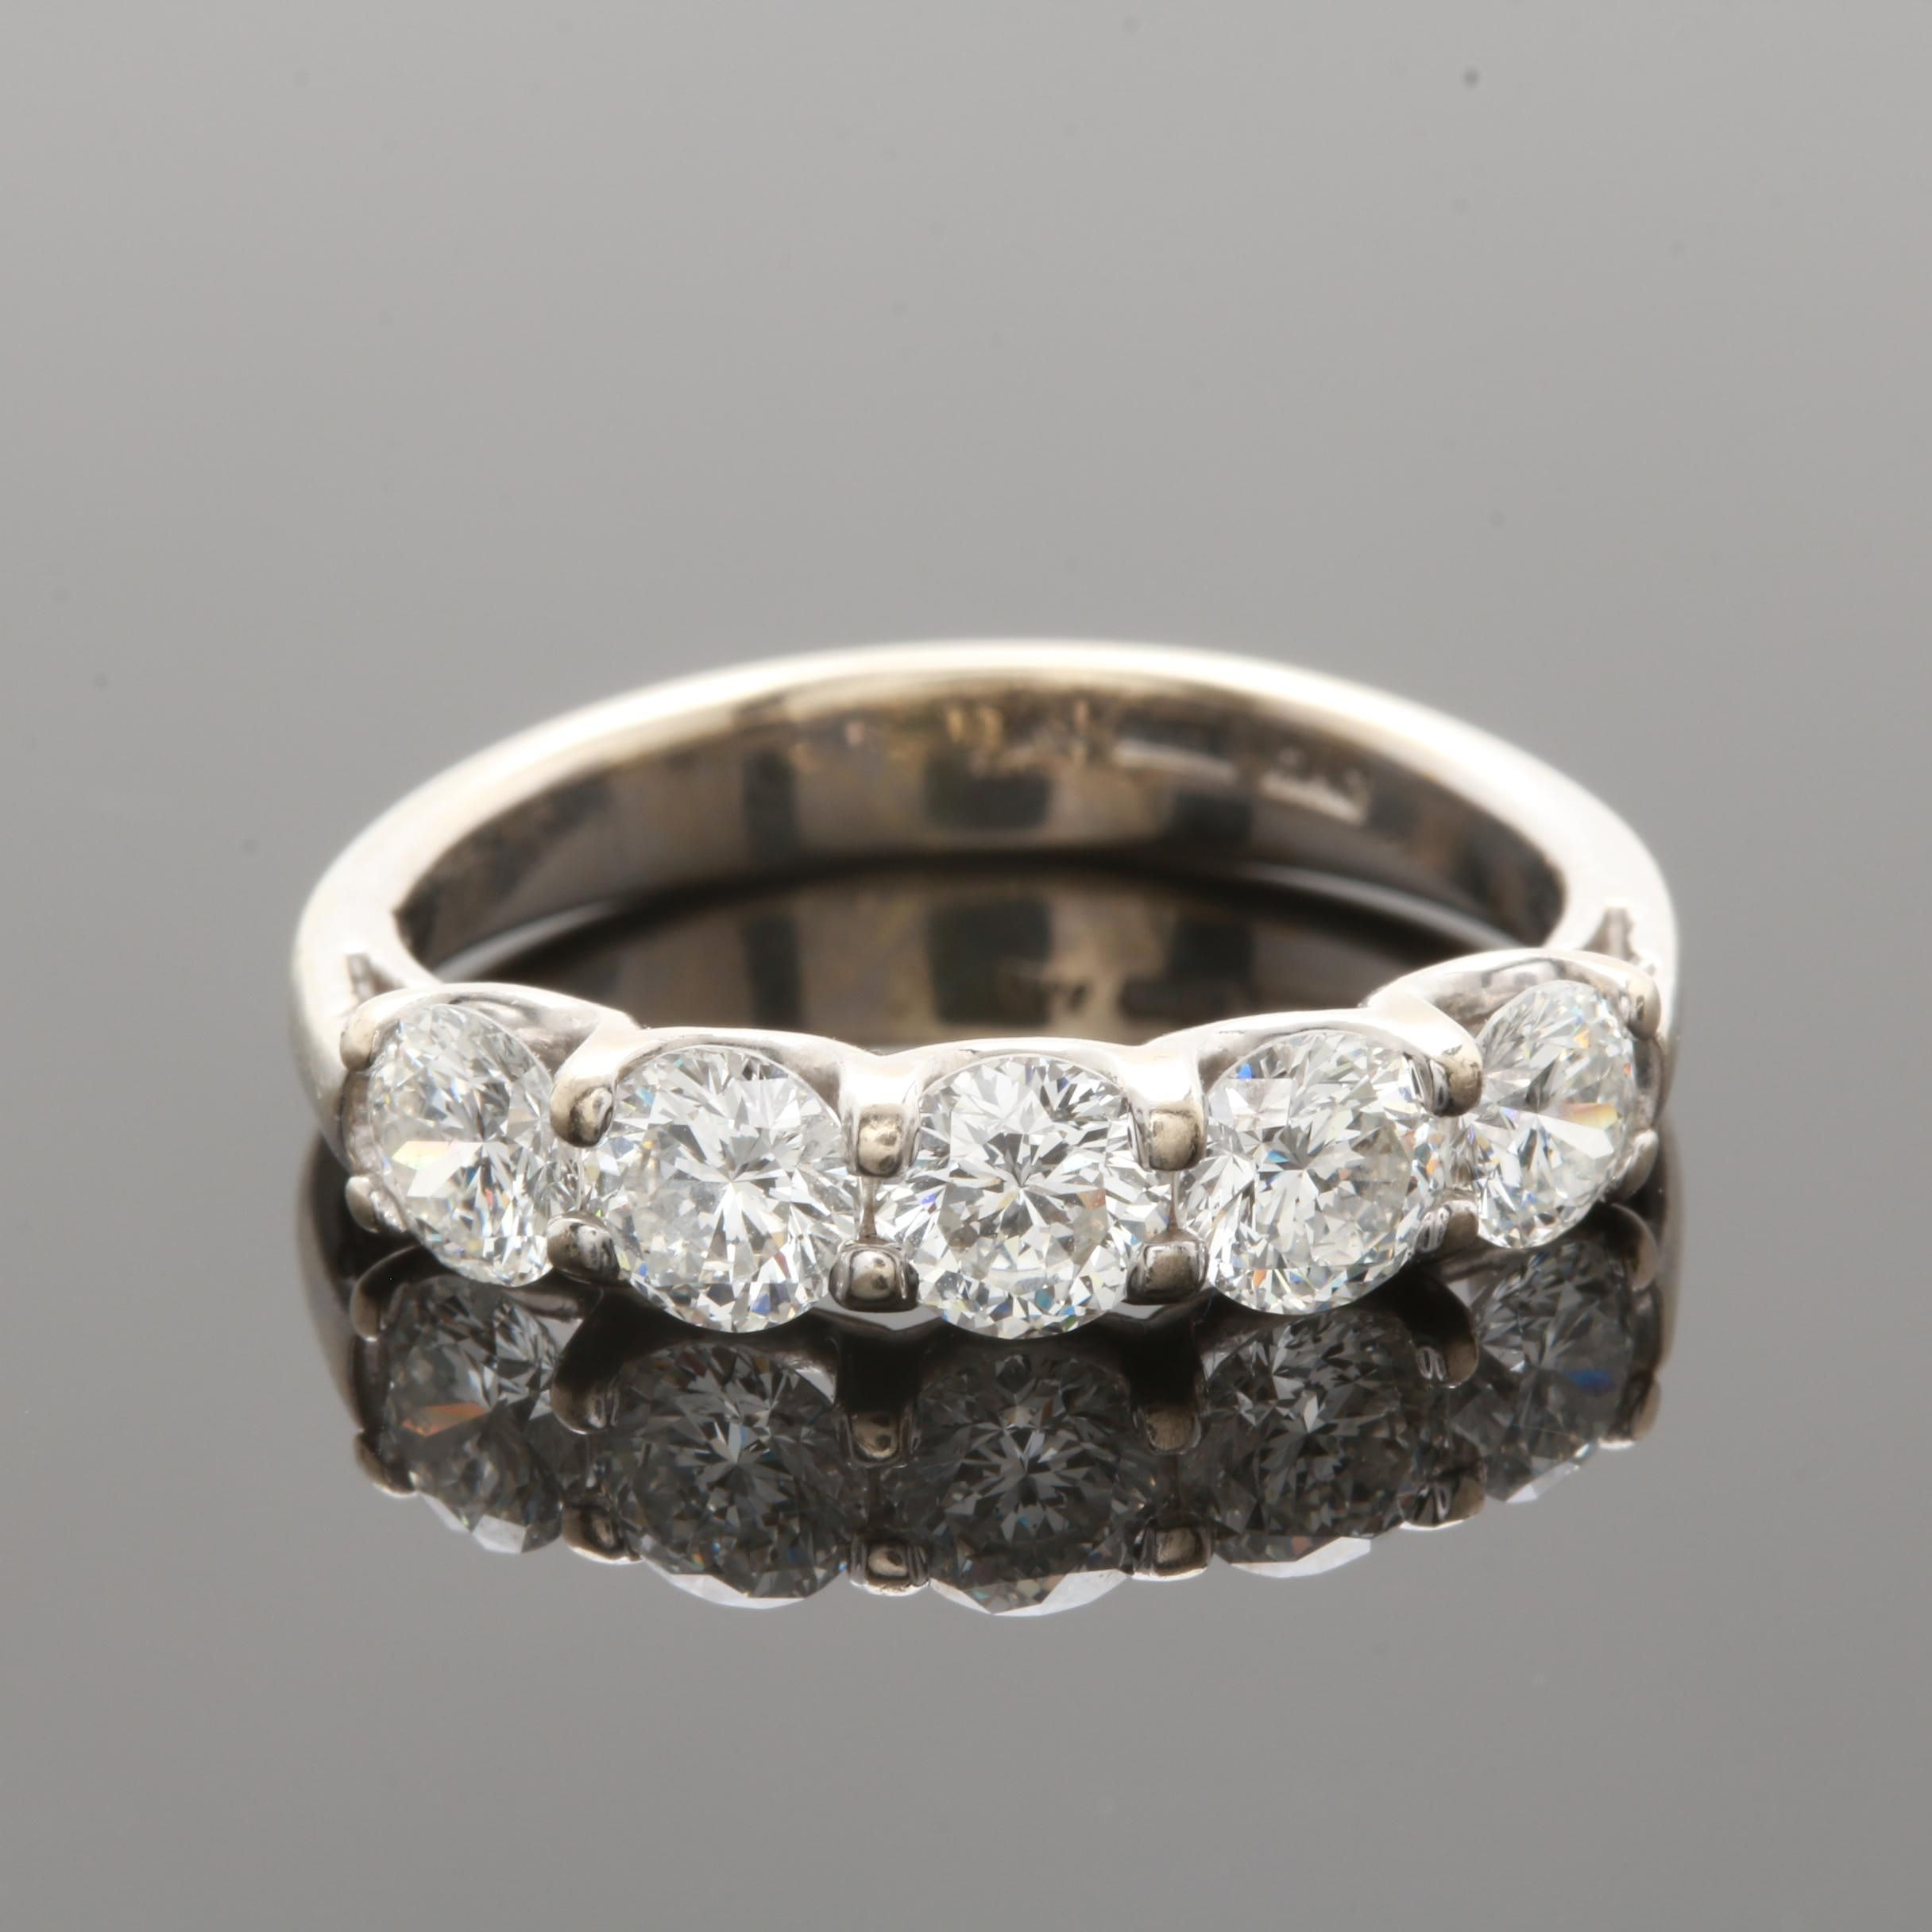 Roberto Coin 18K White Gold 1.28 CTW Diamond Ring with GIA Laser Inscriptions